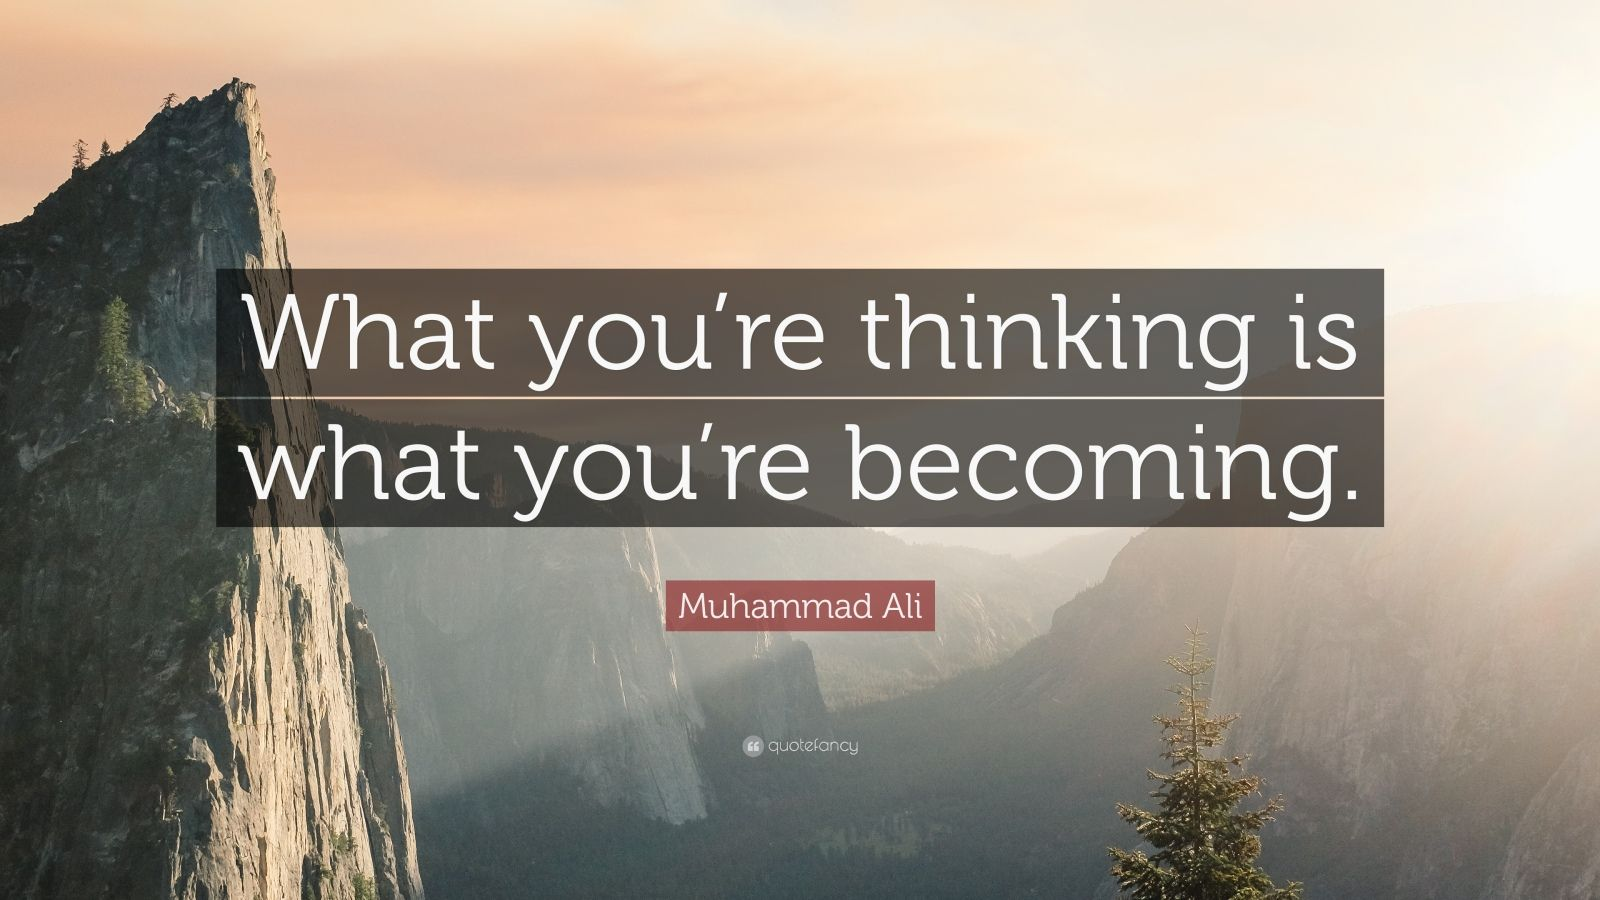 muhammad ali quote   u201cwhat you u2019re thinking is what you u2019re becoming  u201d  22 wallpapers